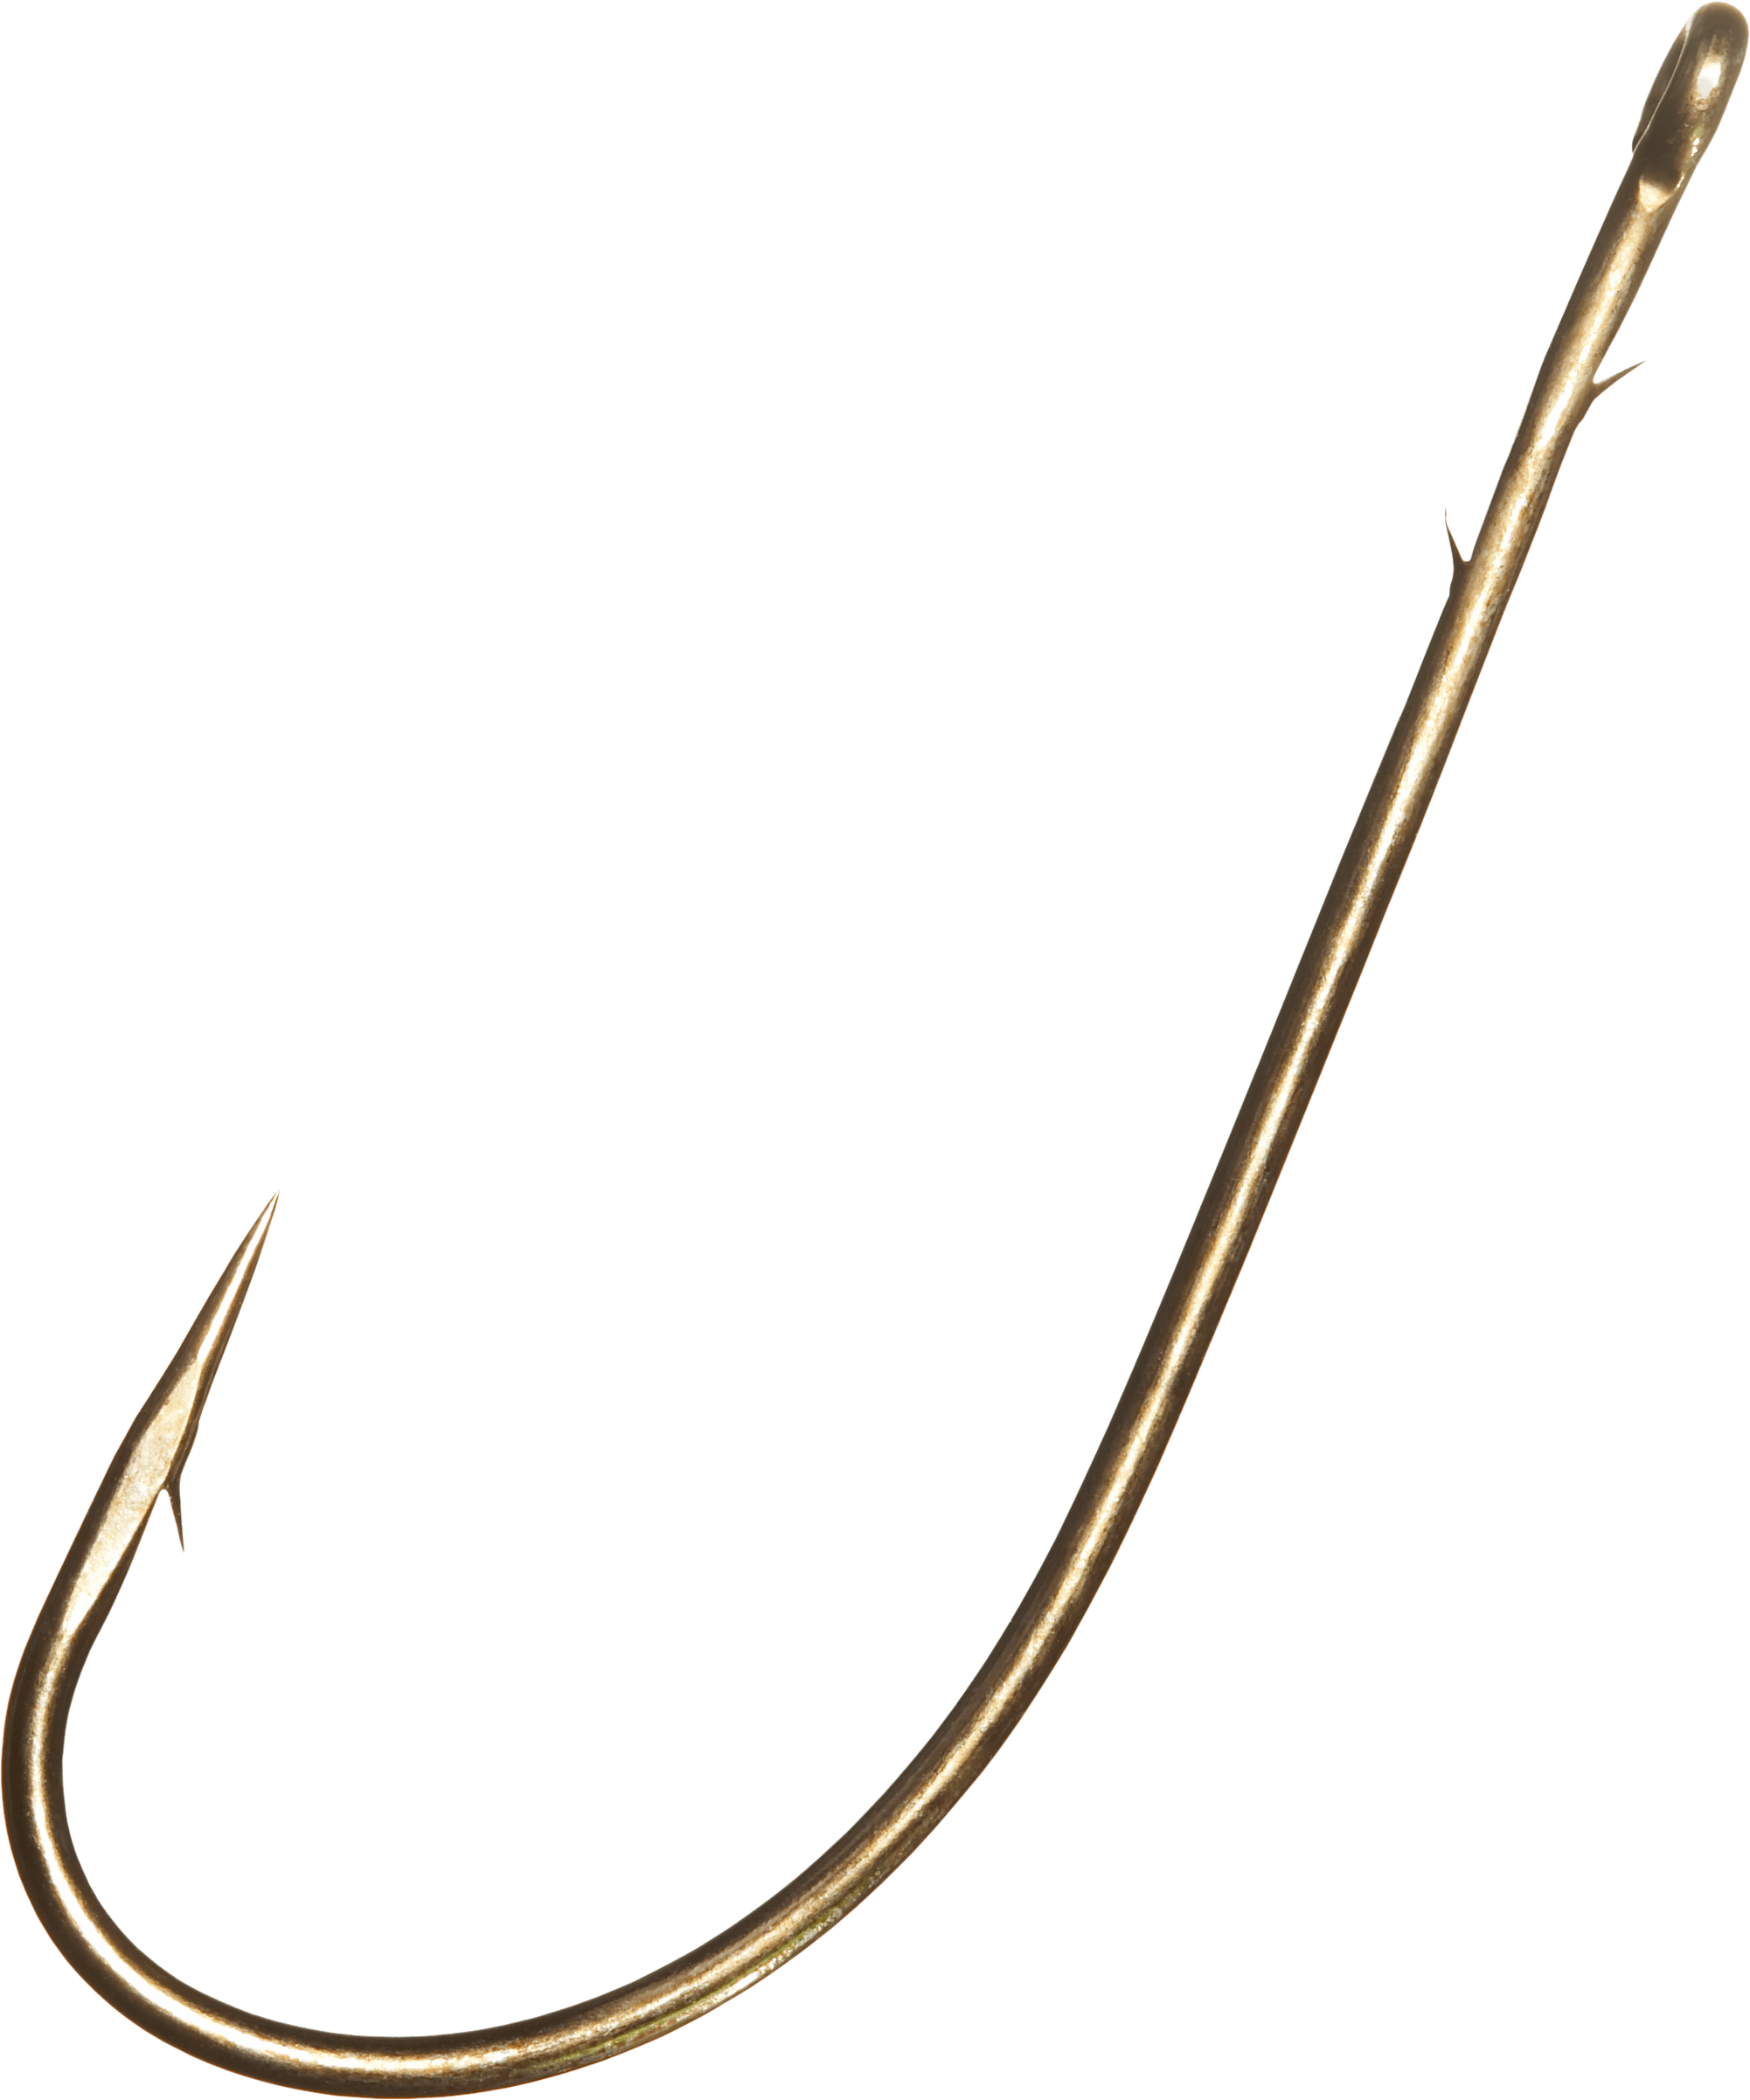 Fishing hook png transparent. Worm clipart hookworm